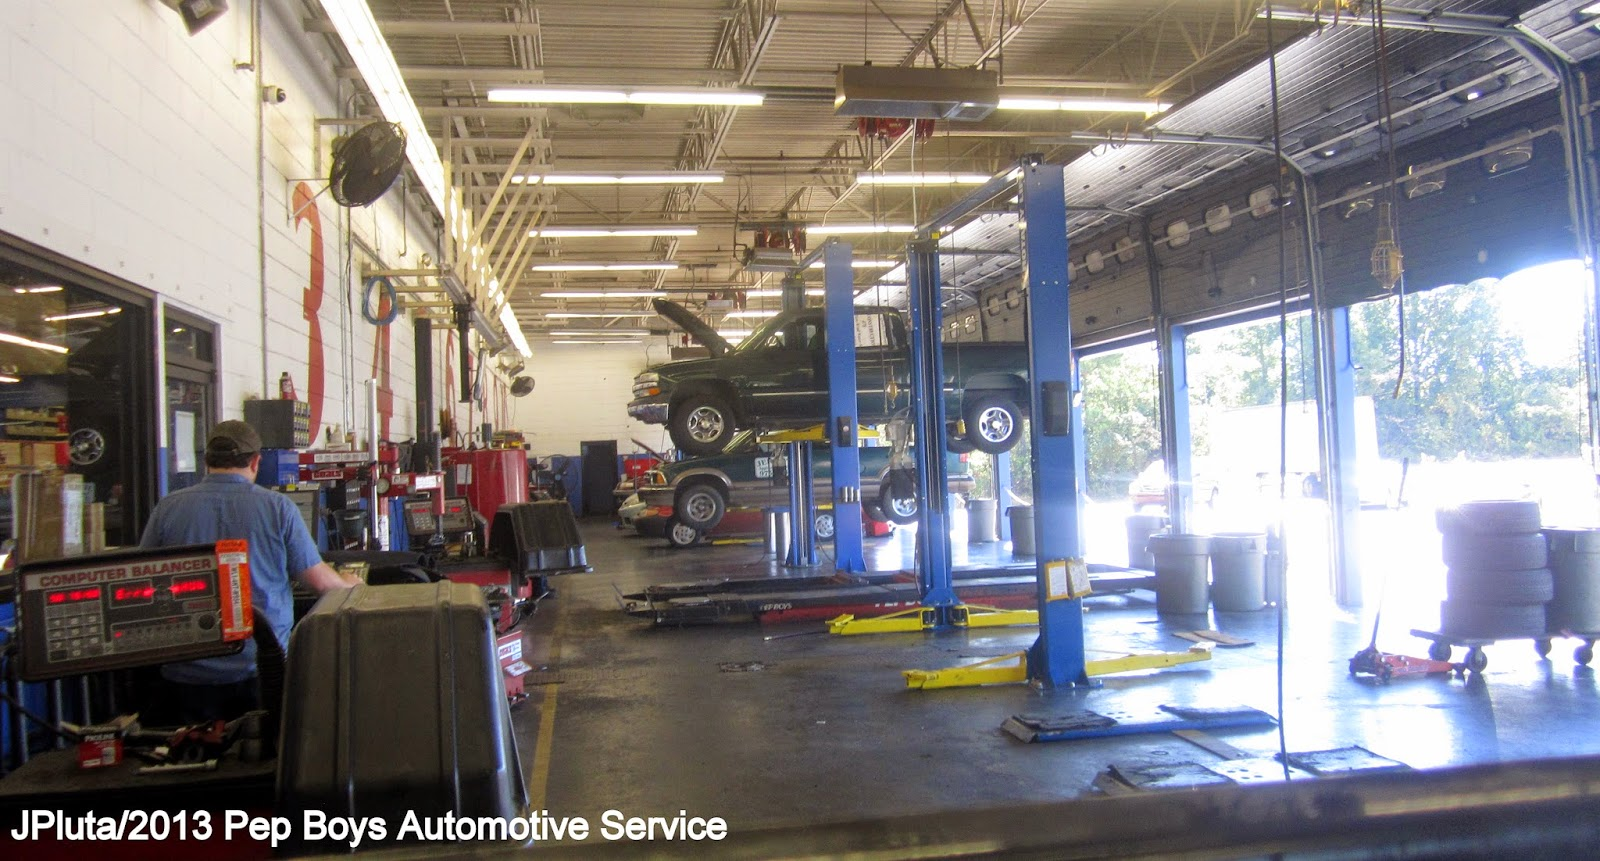 About Pep Boys Collegeville. Pep Boys Collegeville is committed to your satisfaction. We offer Tires, Auto Service, Car Parts and Accessories at our more than .